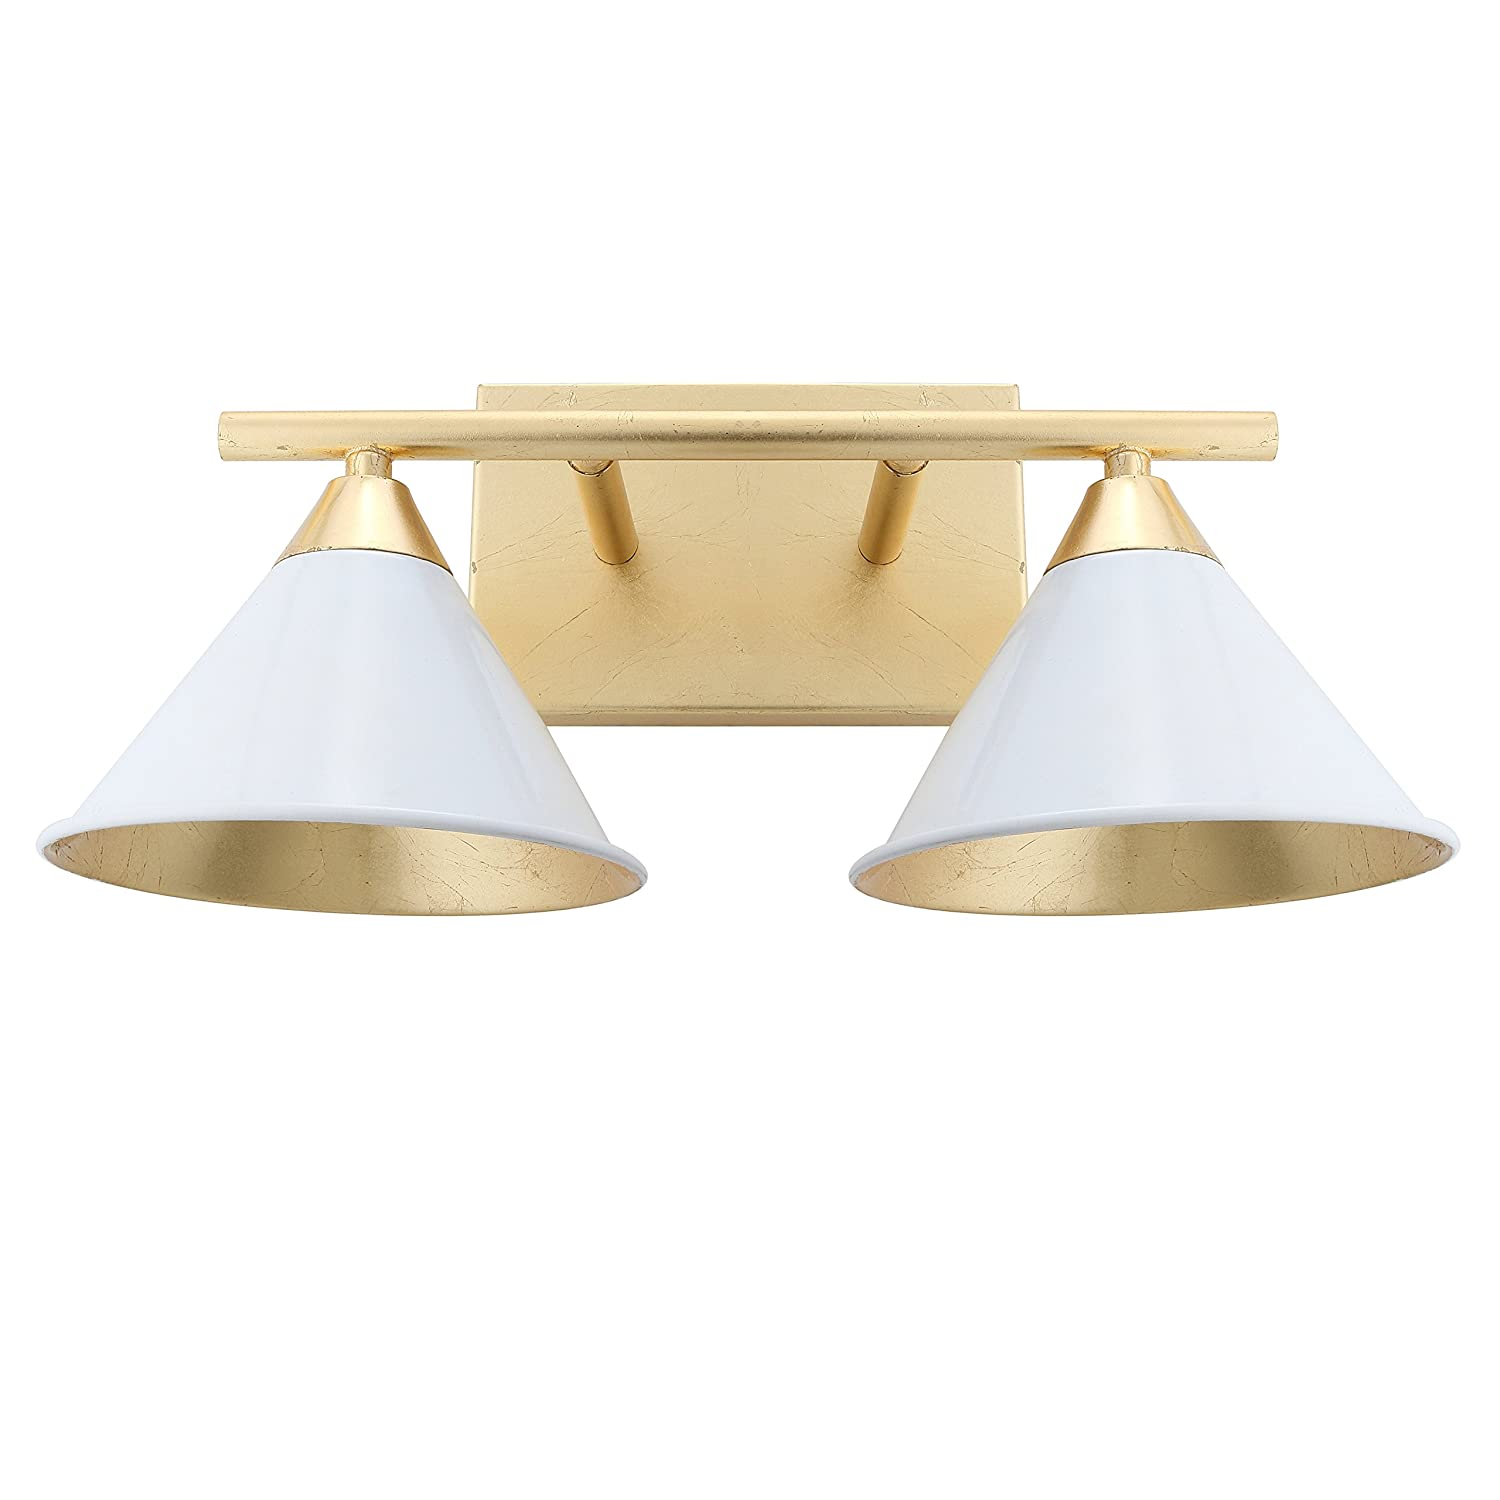 Yvette 2 light metal vanity wall light white gold by jonathan y